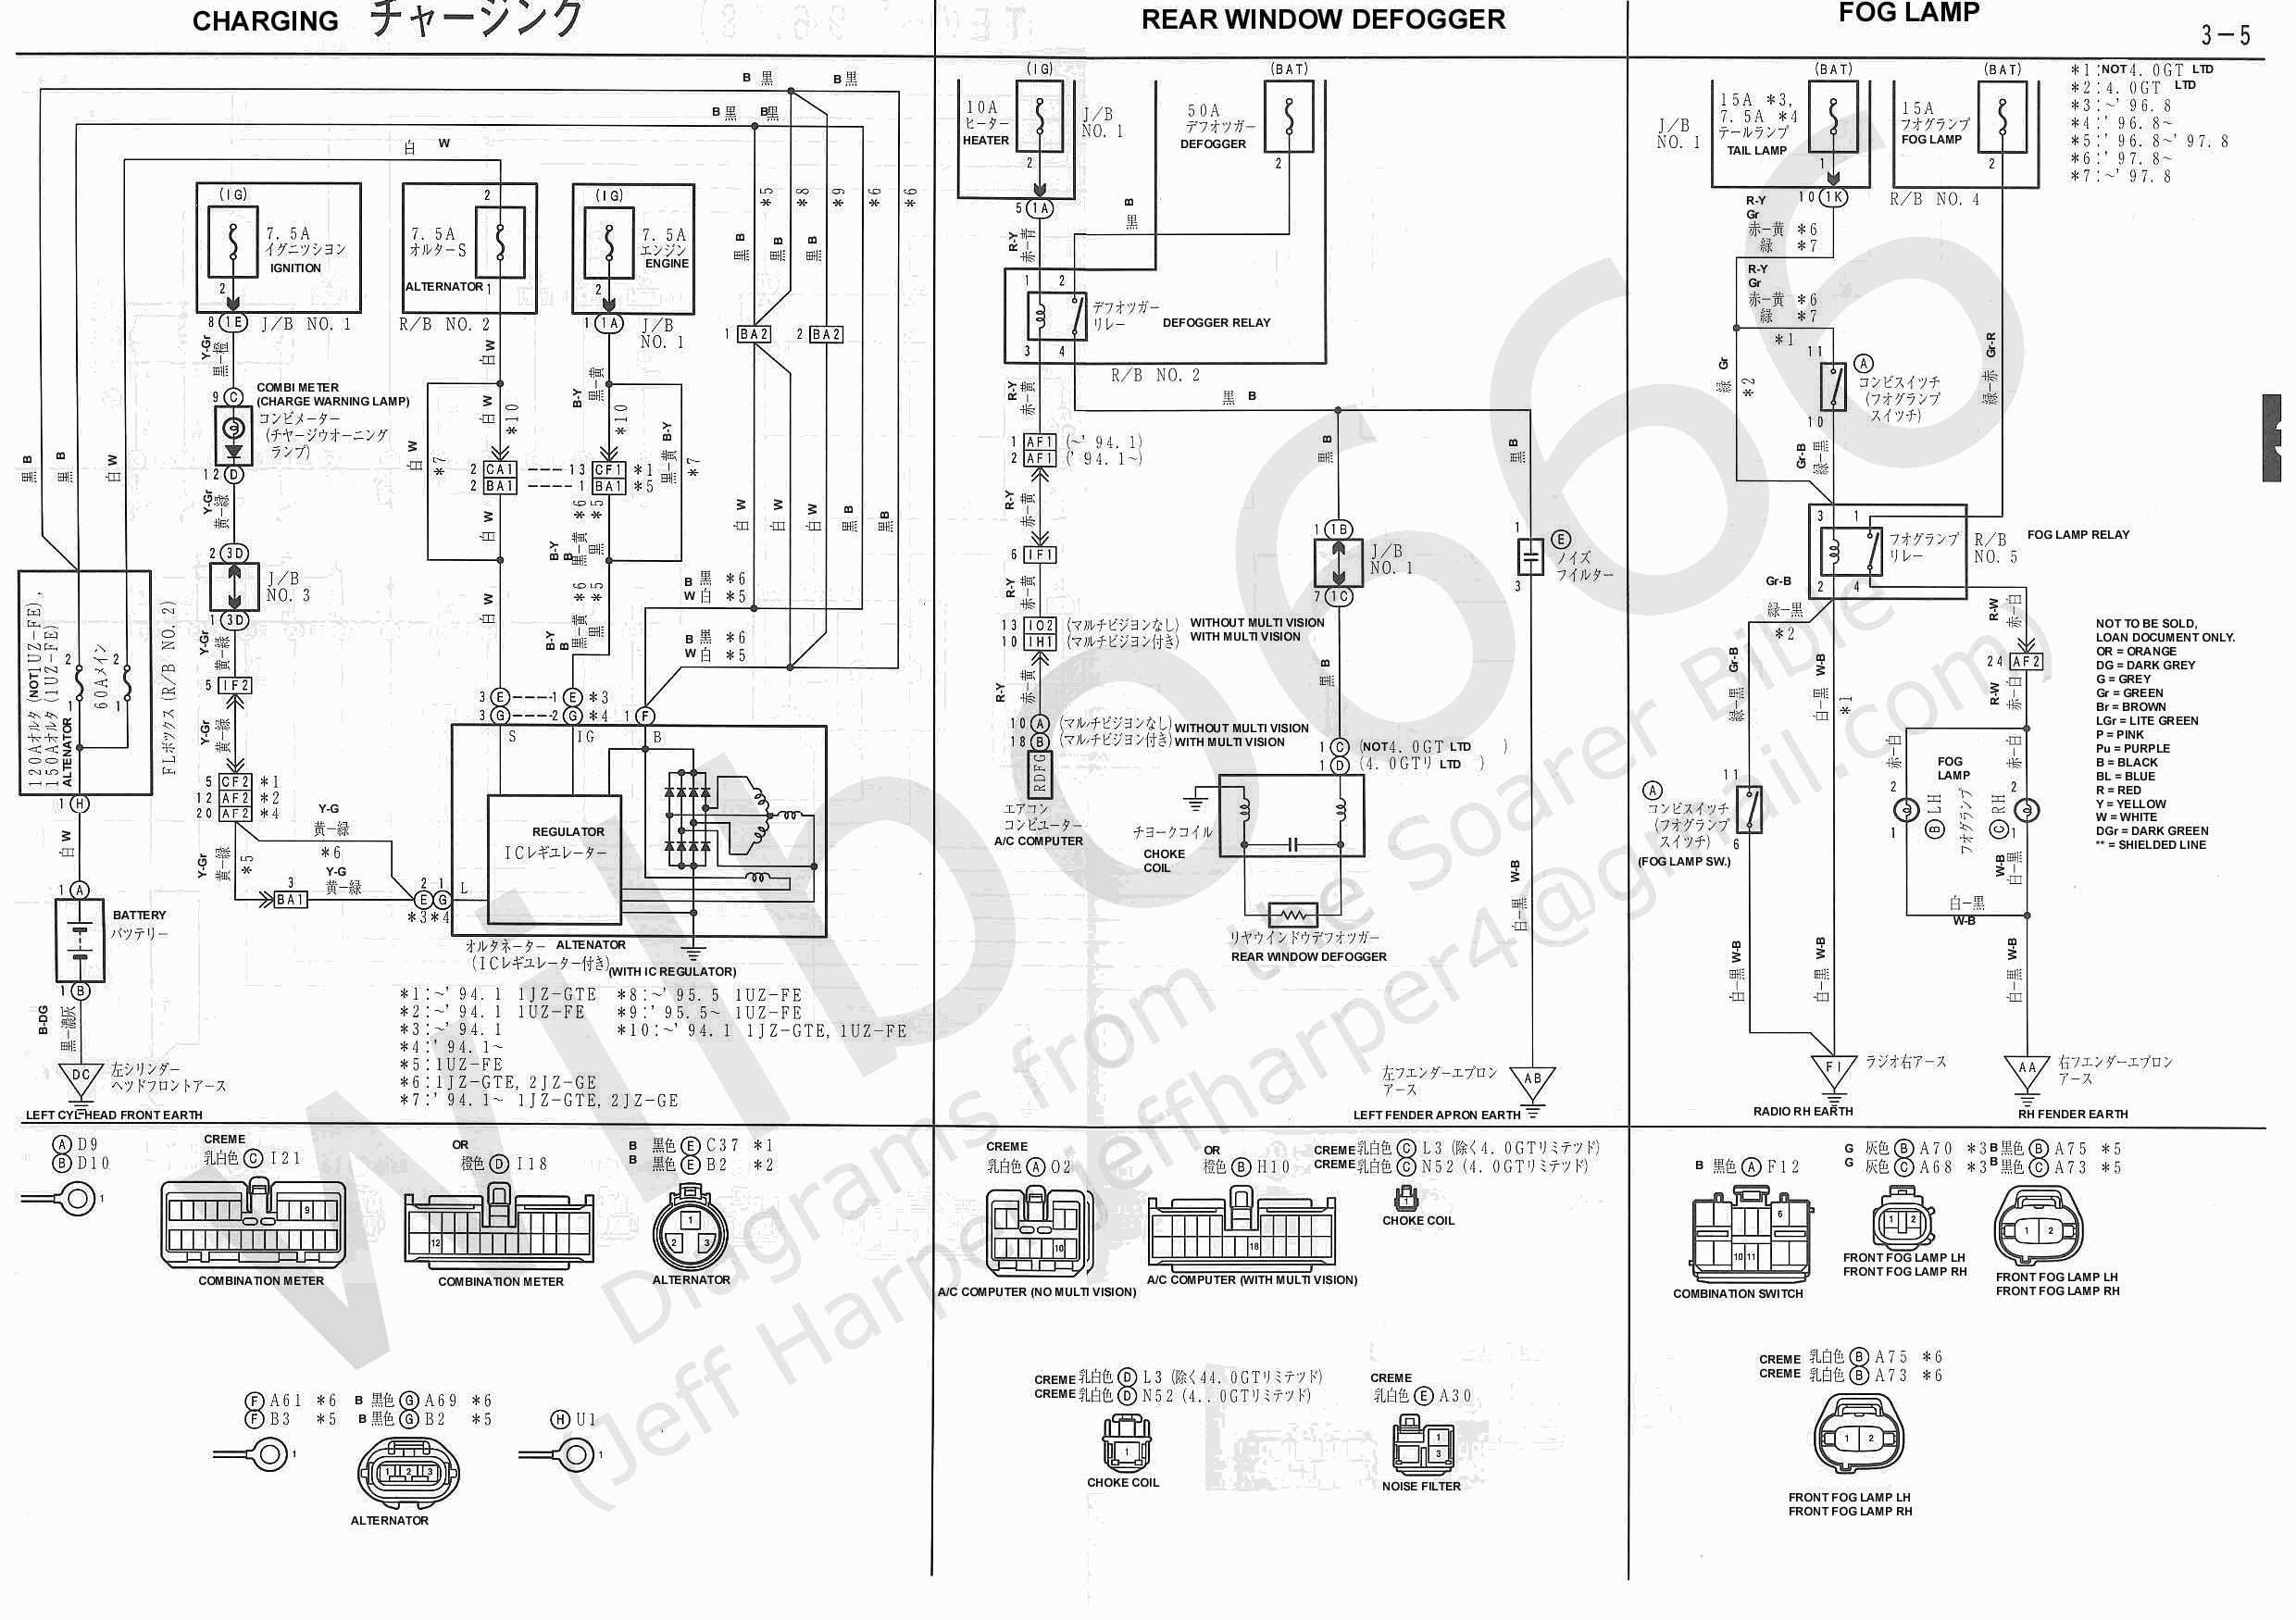 xZZ3x Electrical Wiring Diagram 6737105 3 5?resize\\=665%2C469 100 [ ae86 wiring diagram wiring diagram schematics ] poe  at panicattacktreatment.co